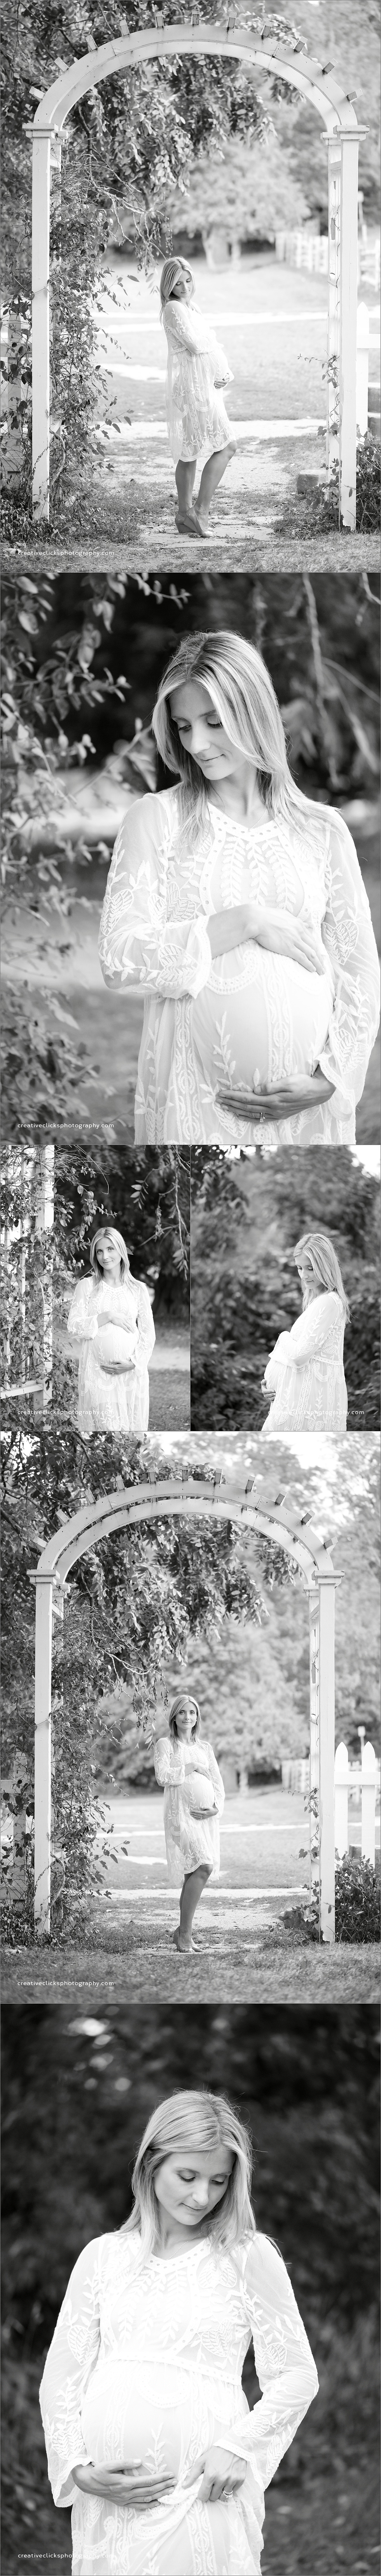 maria-niagara-maternity-photographer_0152